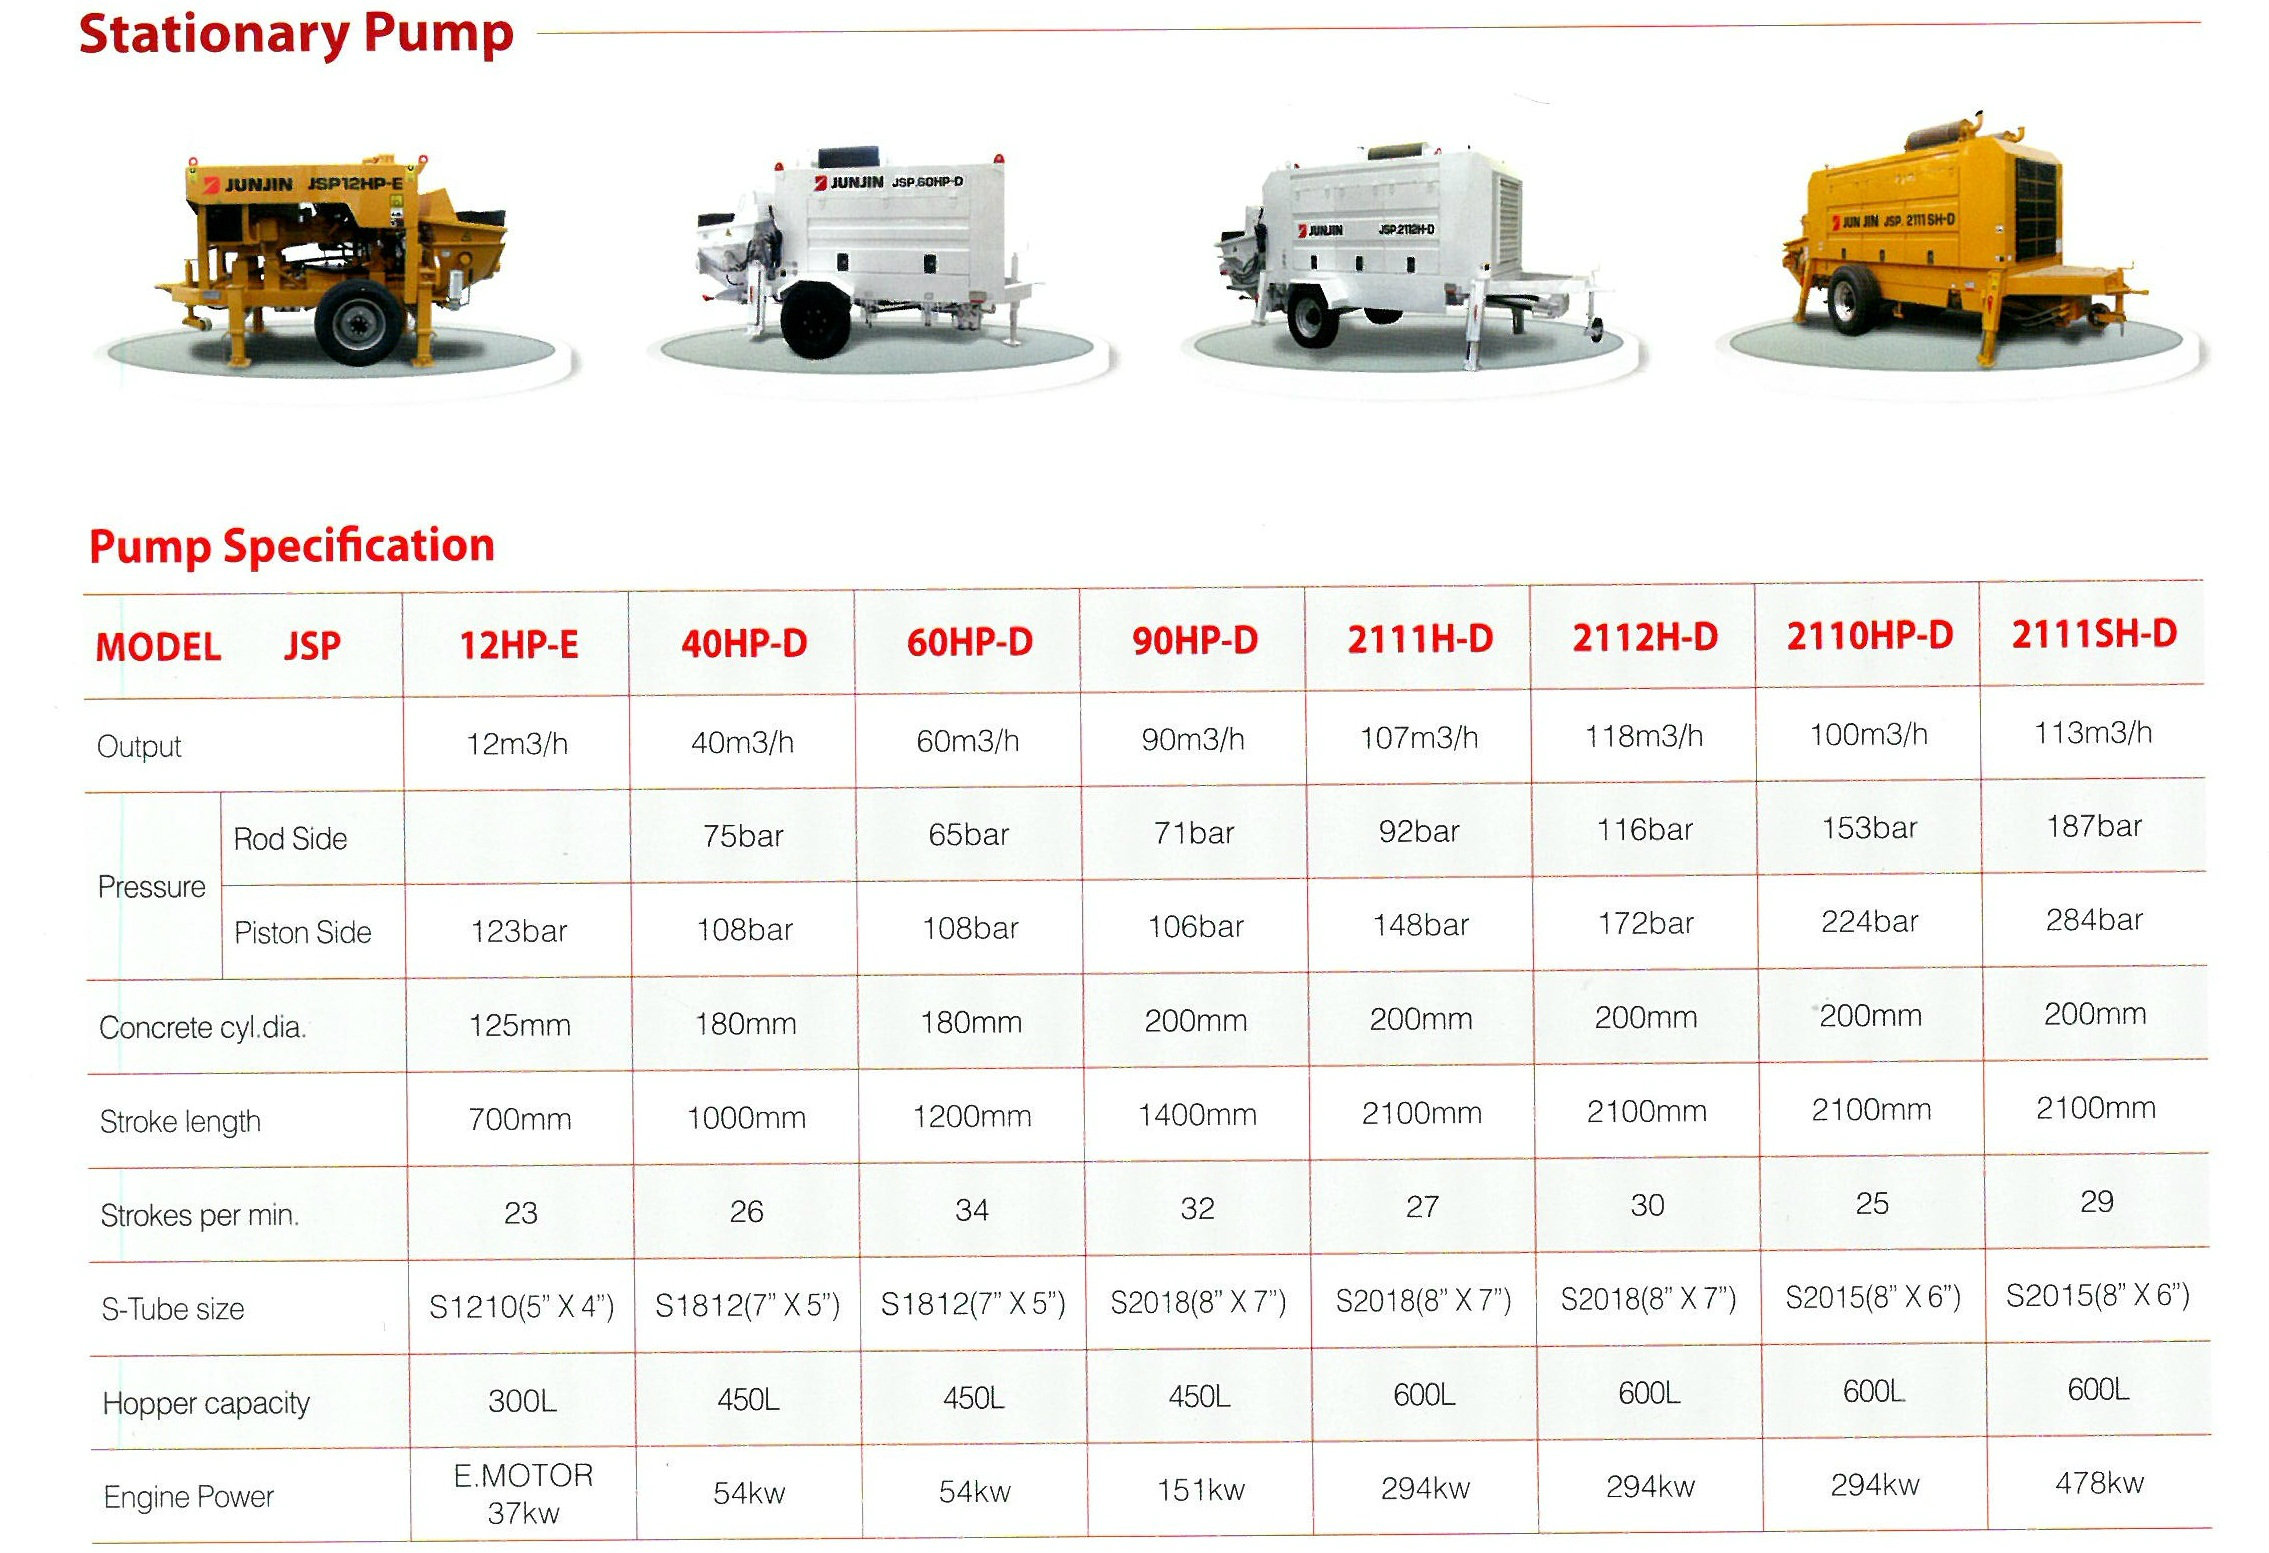 Stationary Pump (CLICK-IN FOR DETAILS)